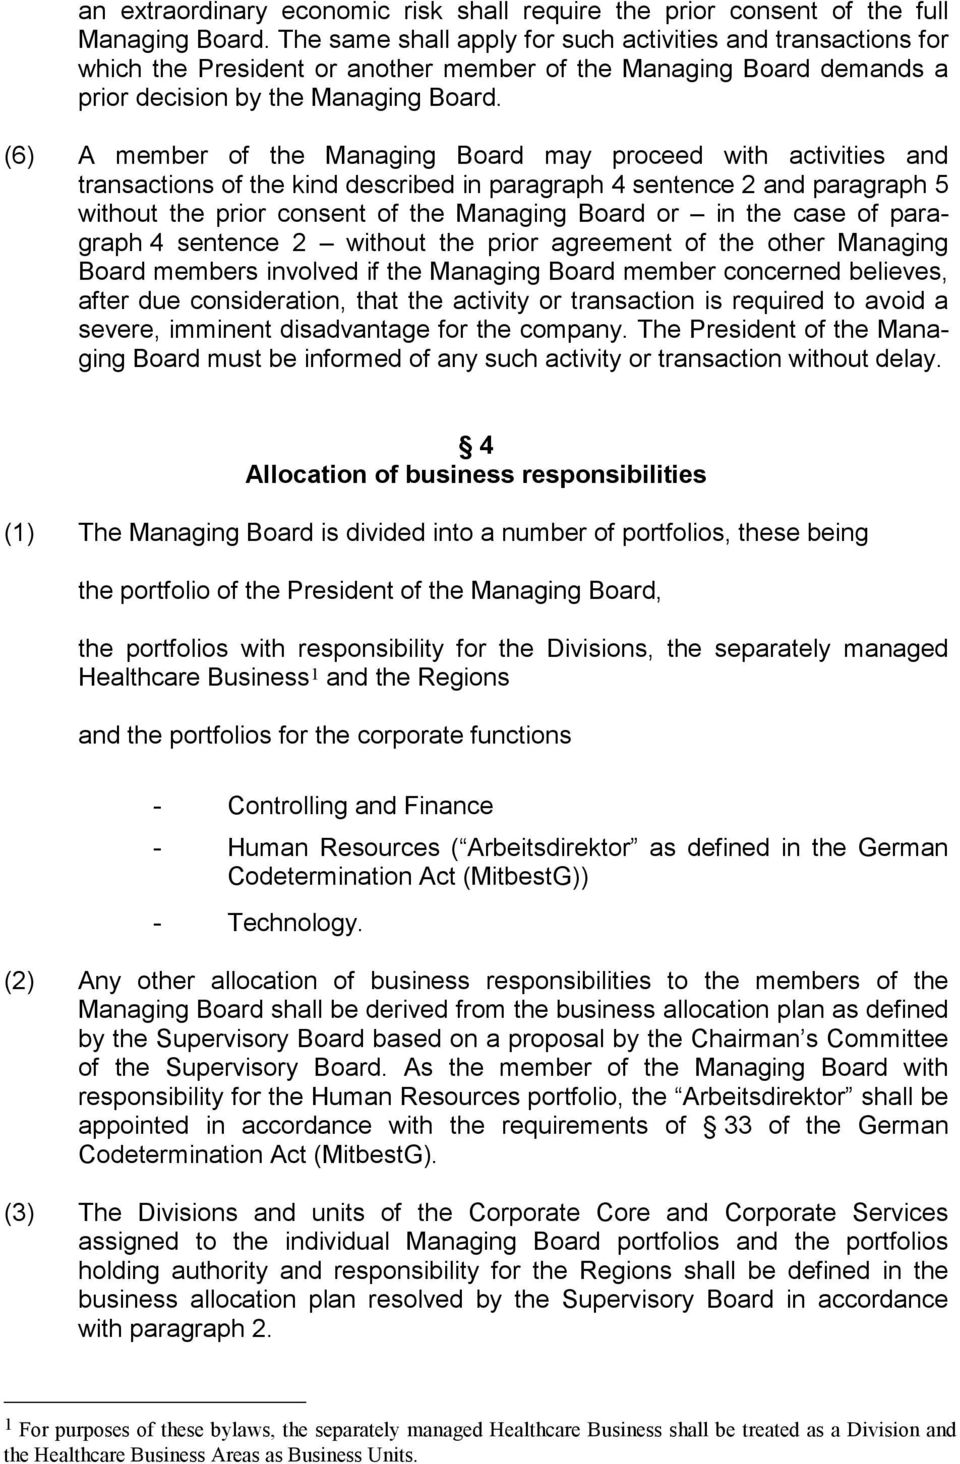 (6) A member of the Managing Board may proceed with activities and transactions of the kind described in paragraph 4 sentence 2 and paragraph 5 without the prior consent of the Managing Board or in